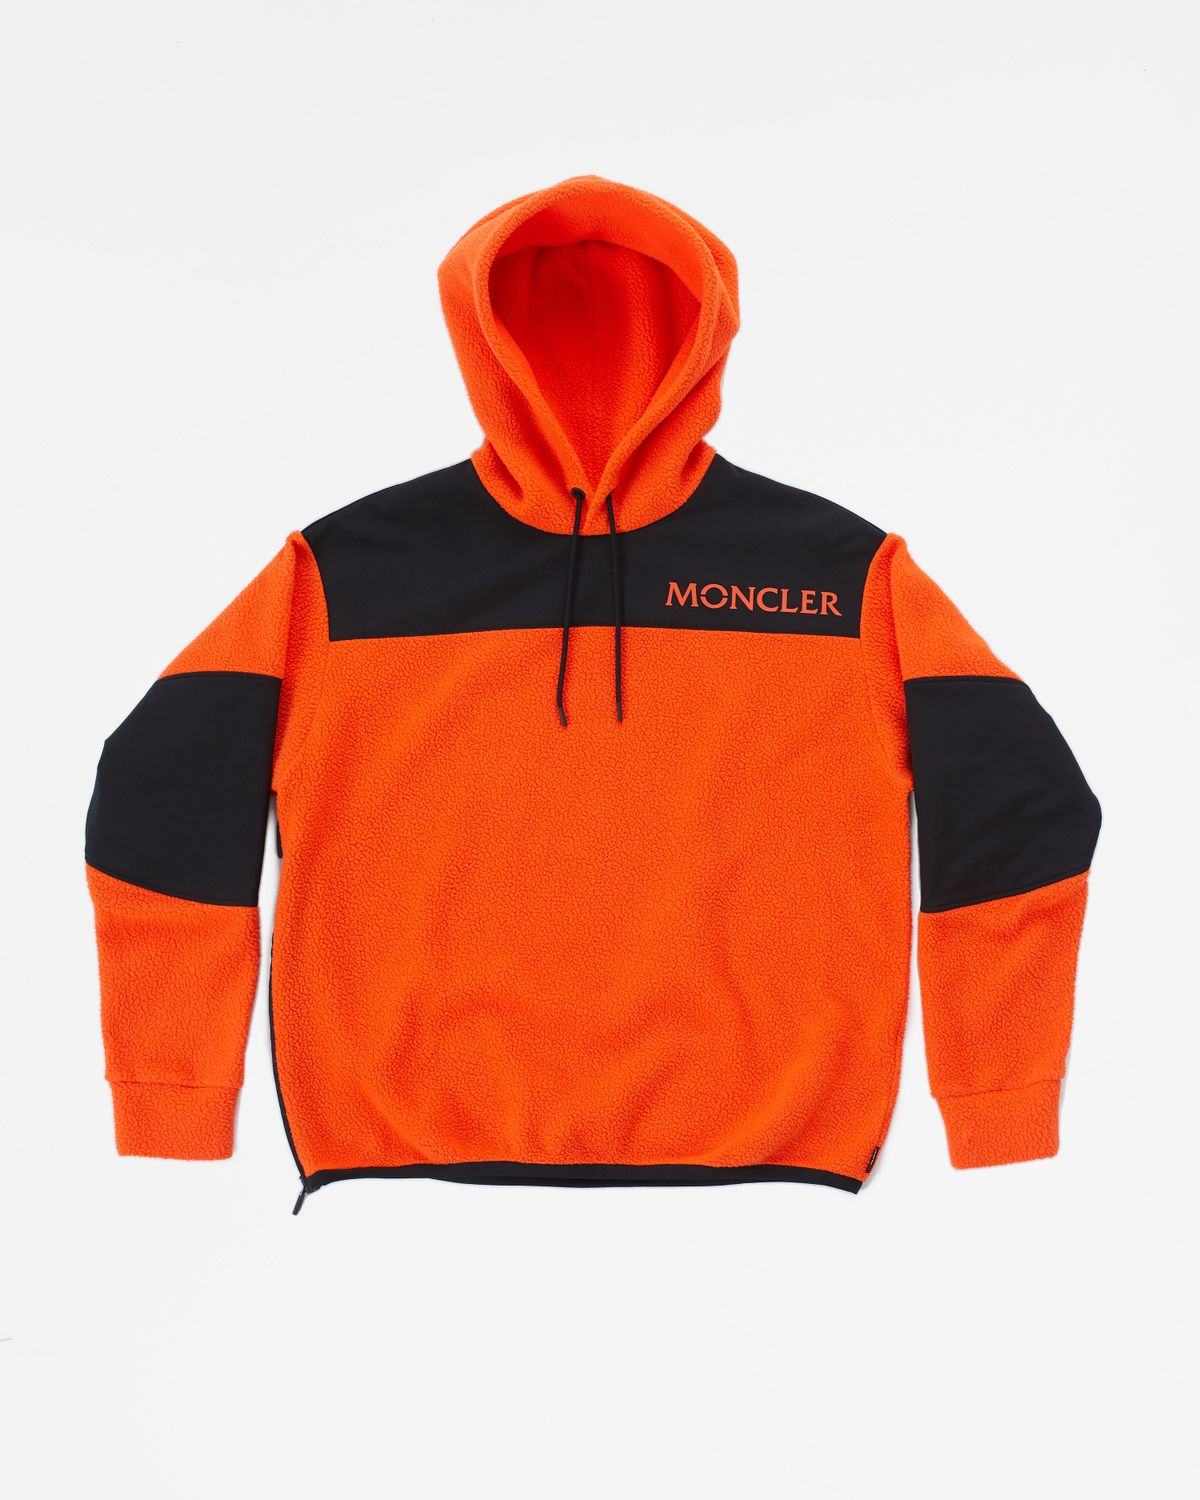 Moncler — Grenoble Recycled Jumper - Image 1